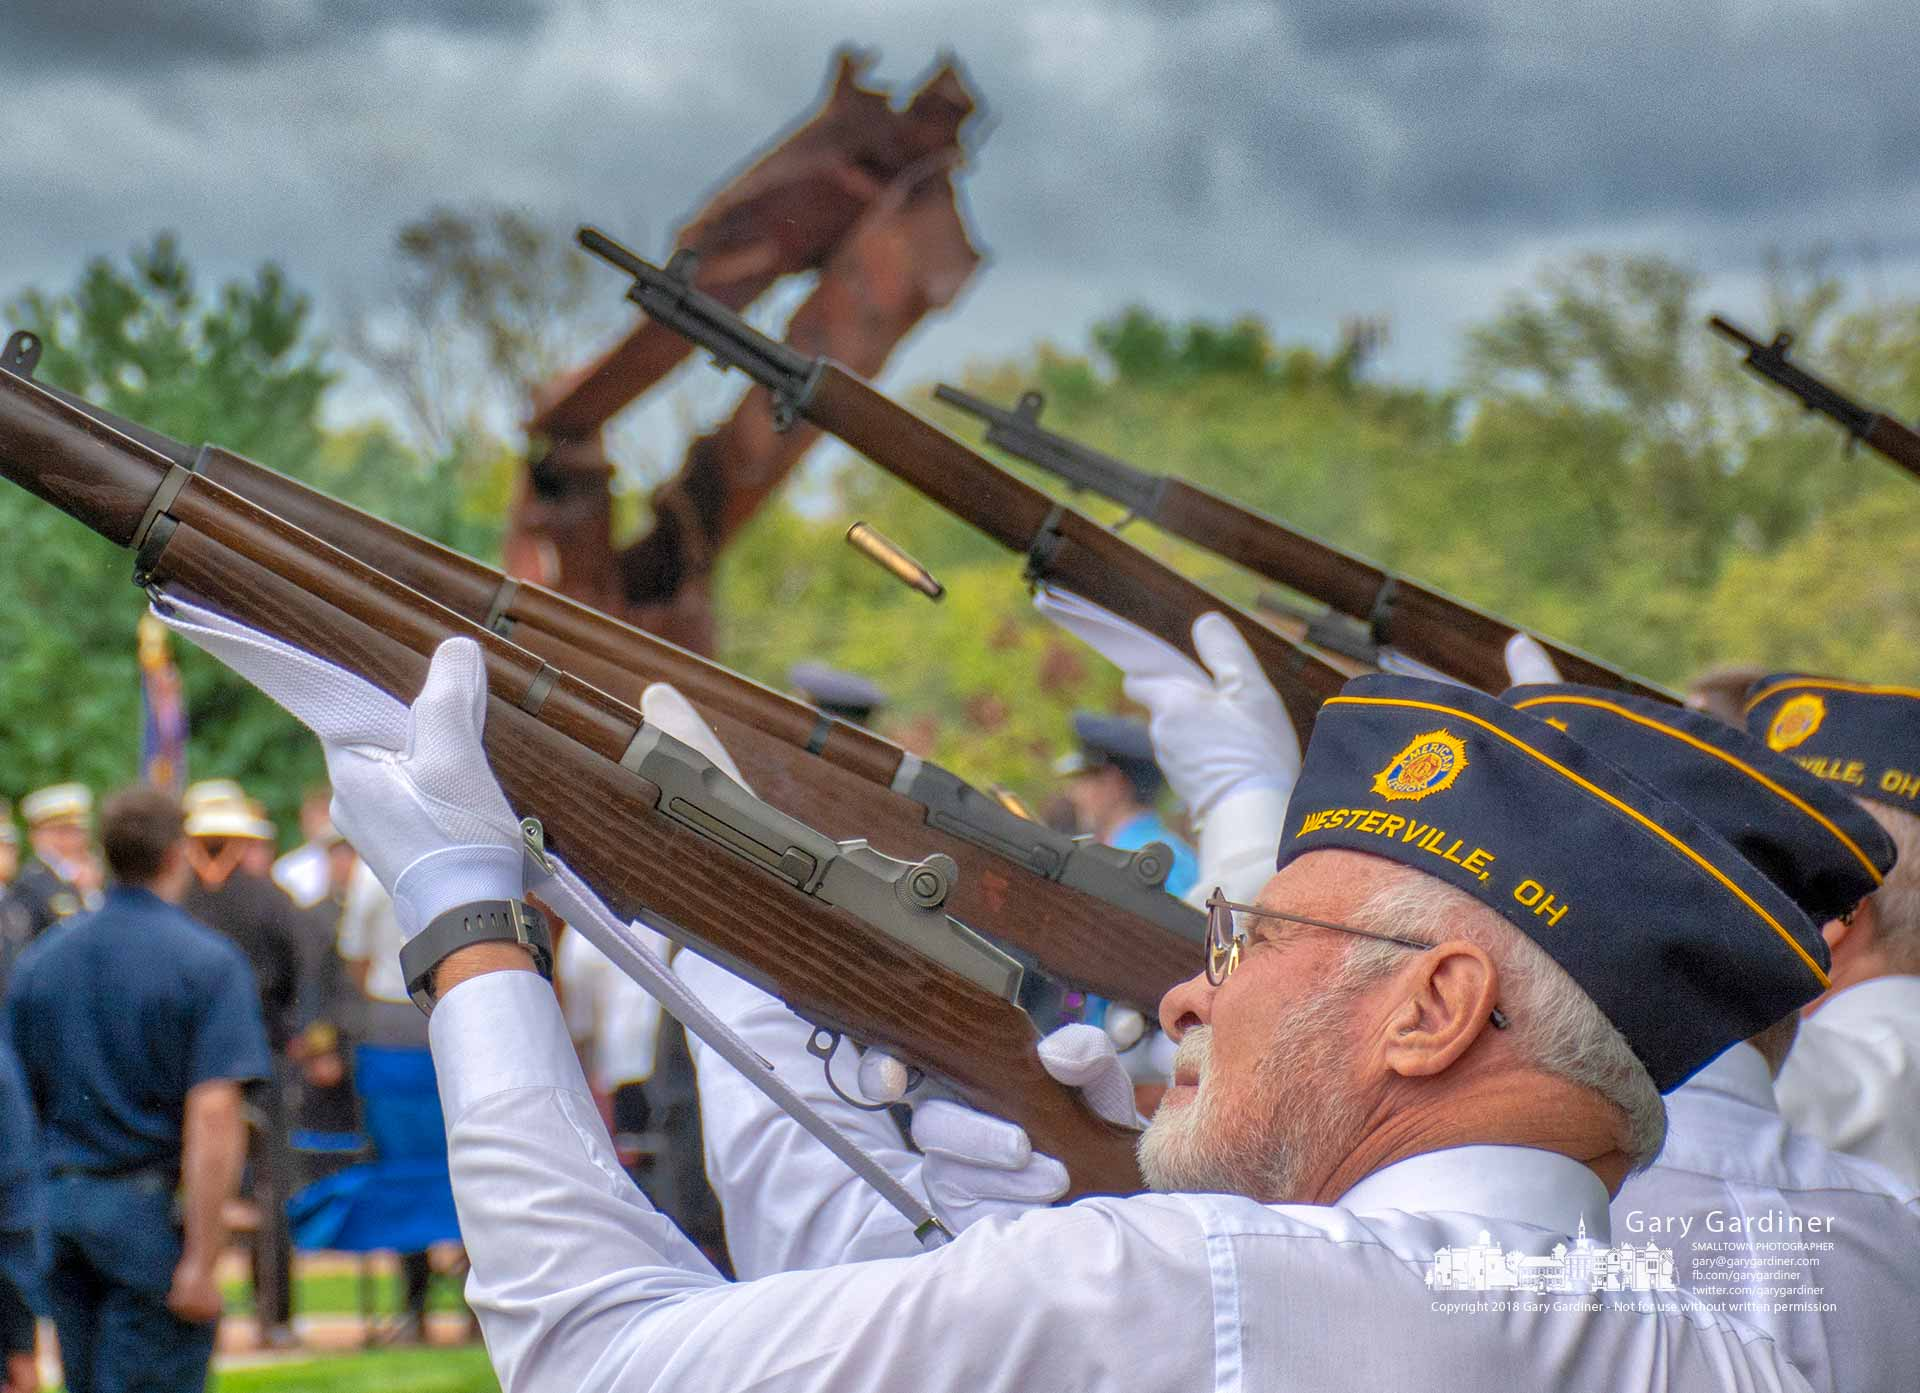 With the World Trade Center steel as a background, the American Legion Honor Guard offers a 21-gun salute at the conclusion of ceremonies marking the anniversary of the attacks on the towers in New York. My Final Photo for Sept. 11, 2018.